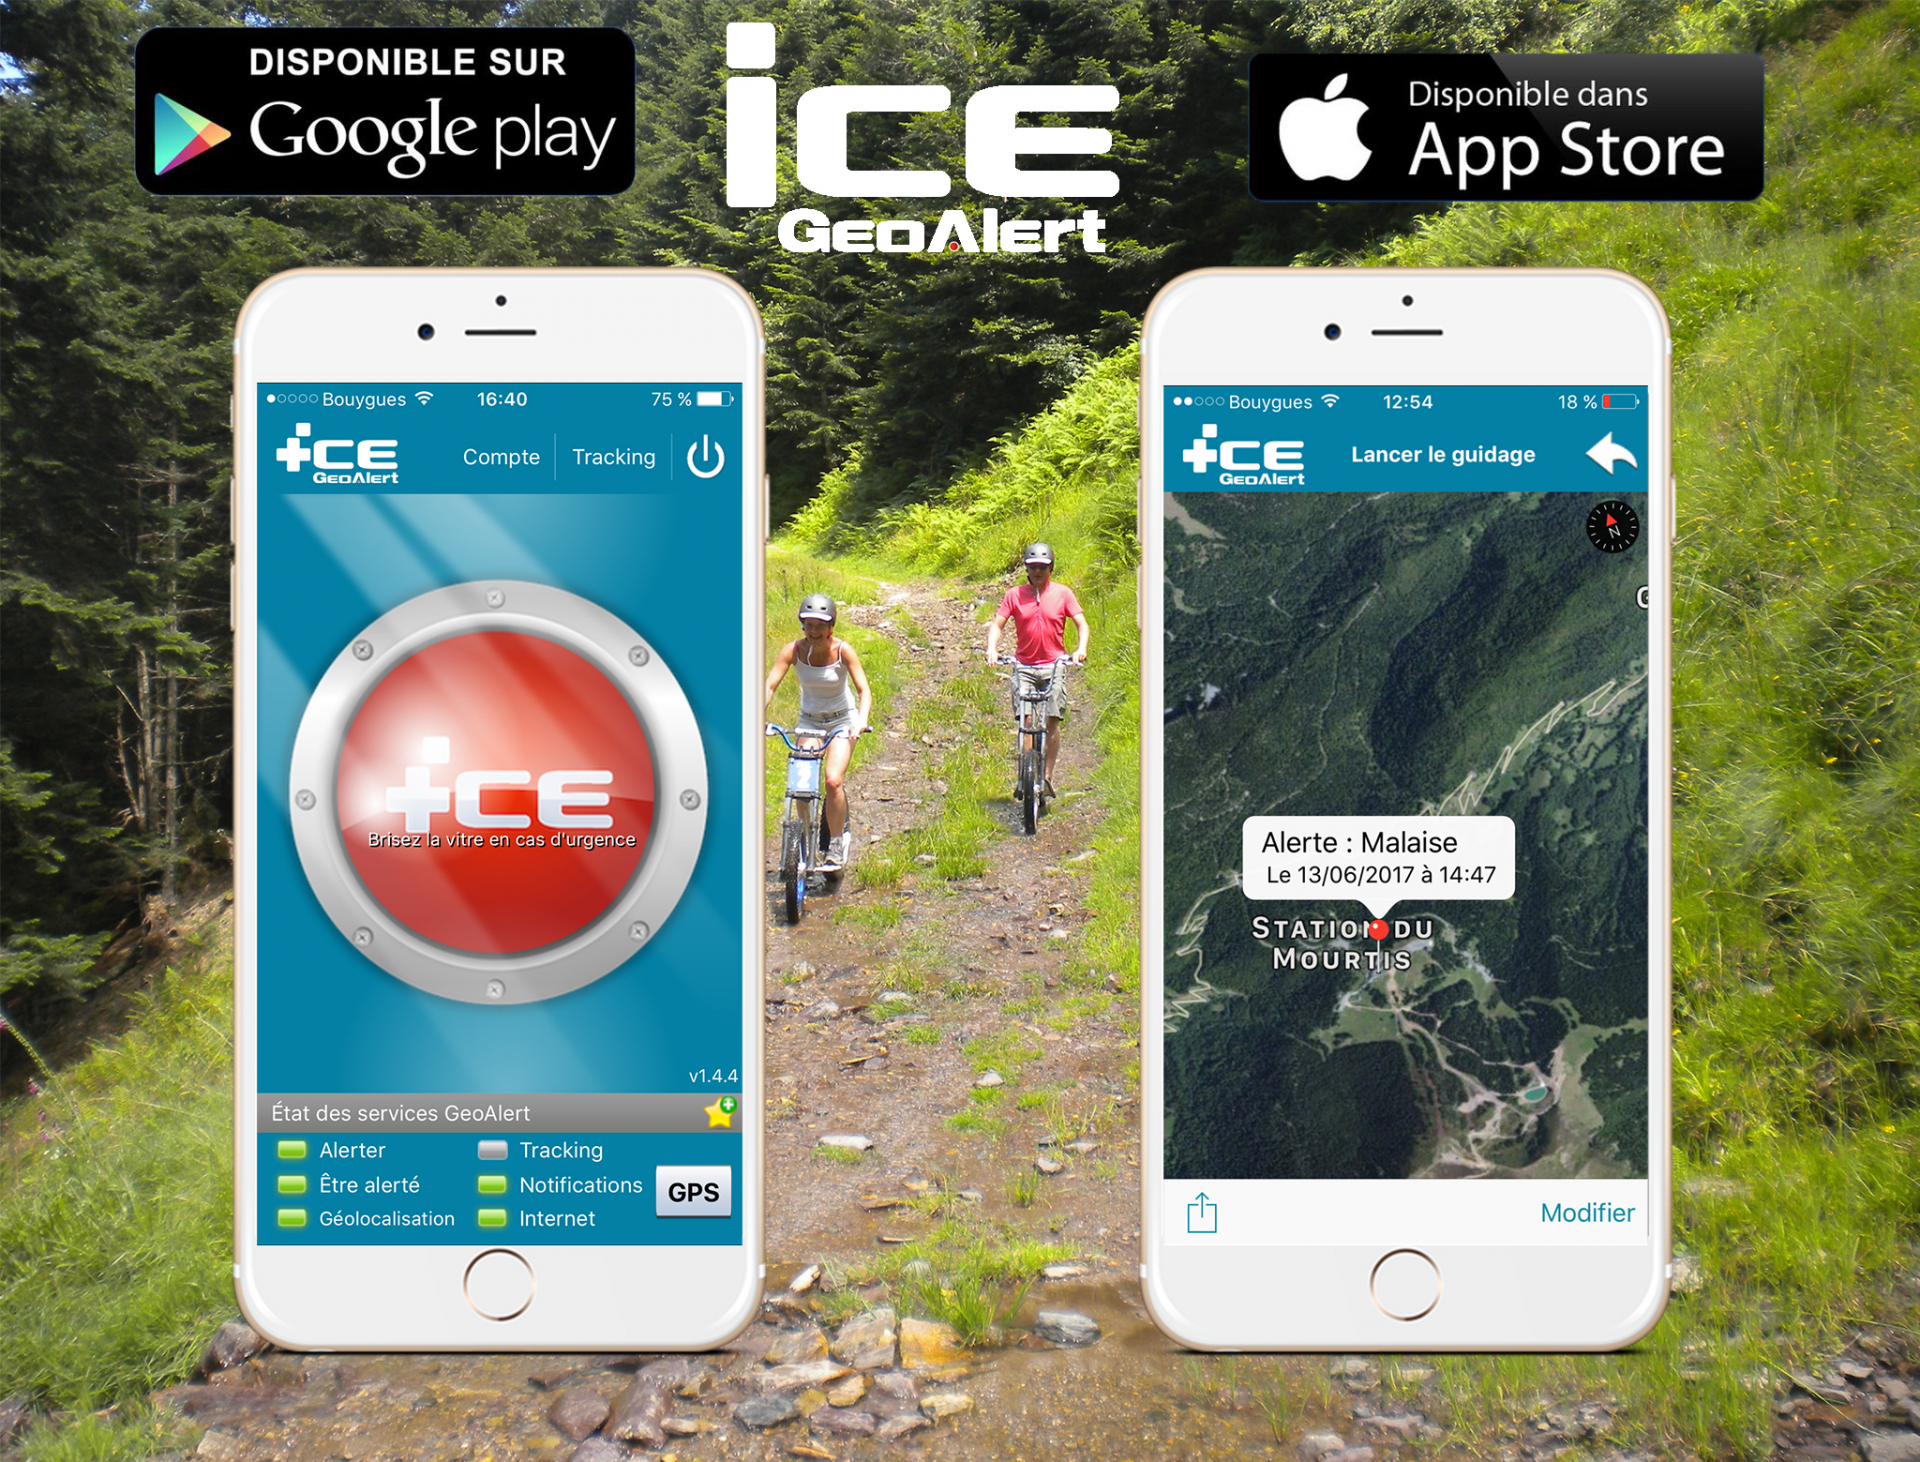 http://mourtis.fr/actus/bons-plans/application-ice-geolocalisation/